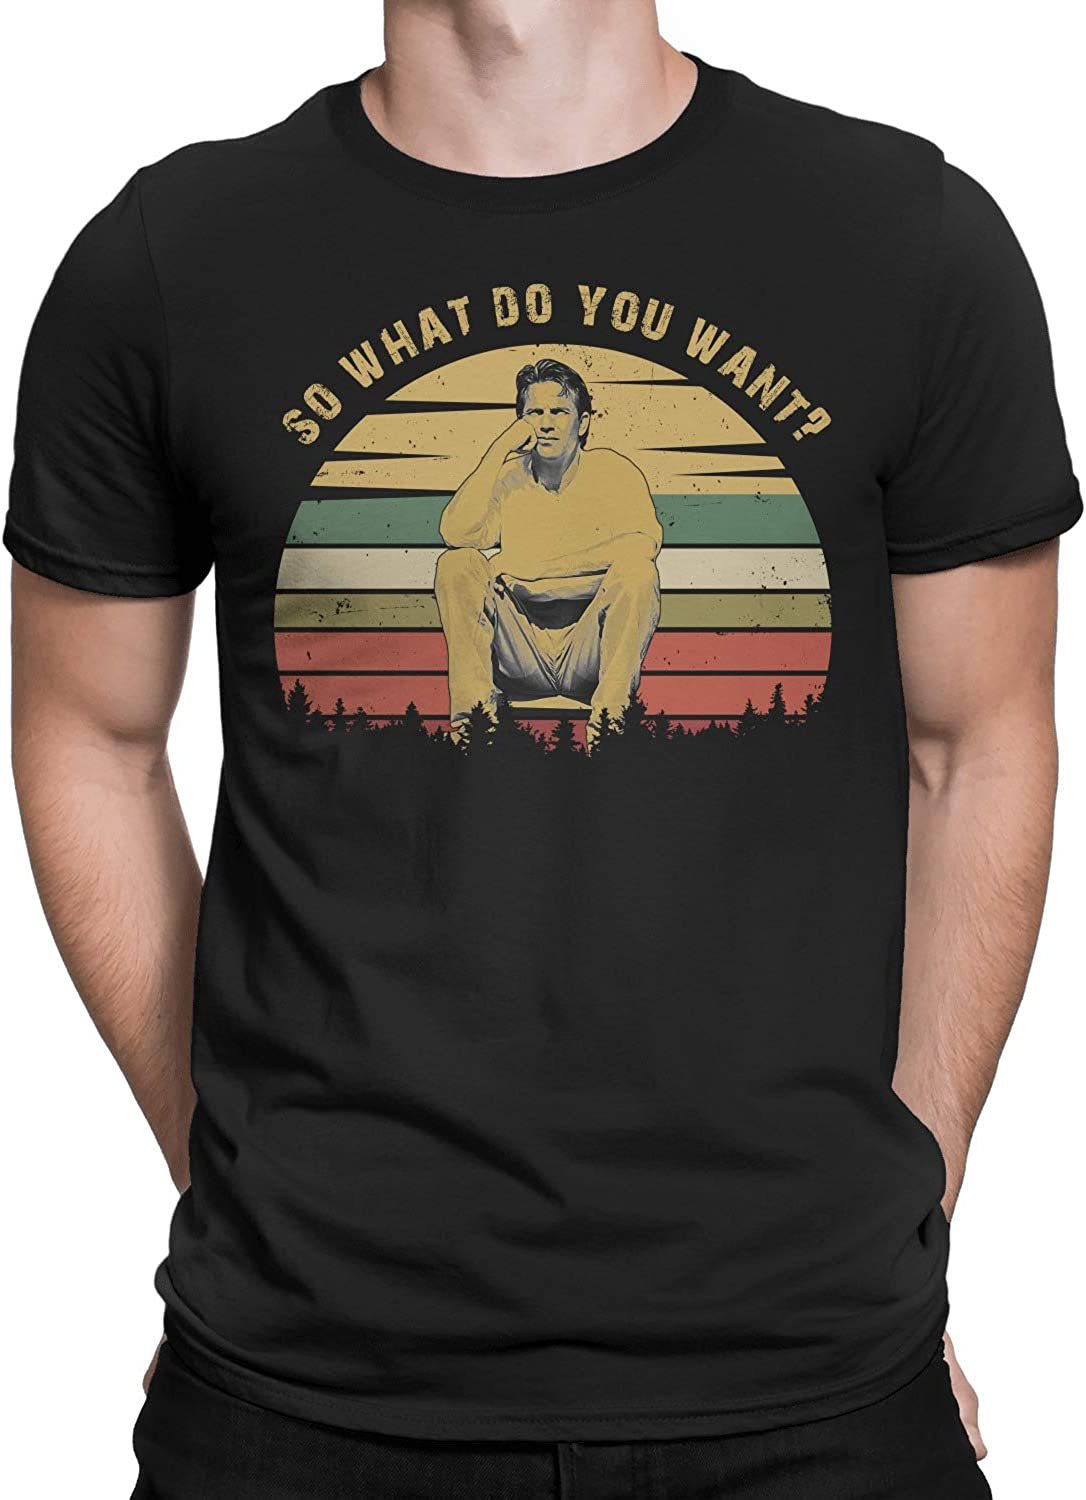 So What Do You Want Vintage T-Shirt